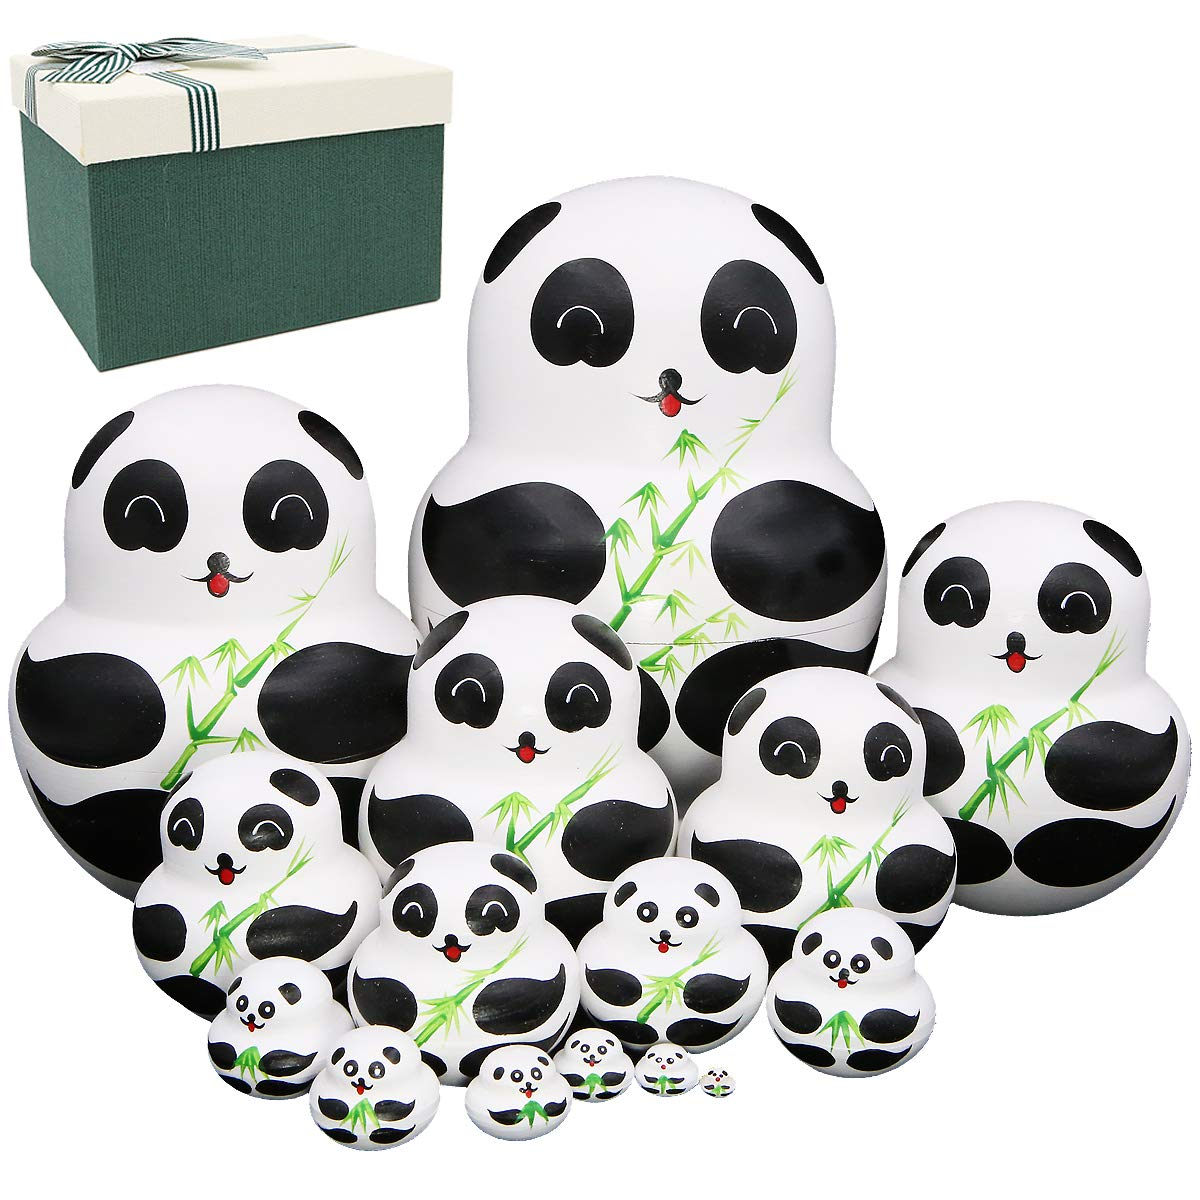 Apol Set of 15 Panda Bear with Bamboo Nesting Dolls Big-Belly Wooden Handmade Matryoshka Russian Doll in a Box with Bow for Kids Toy Home Decoration Year by Apol